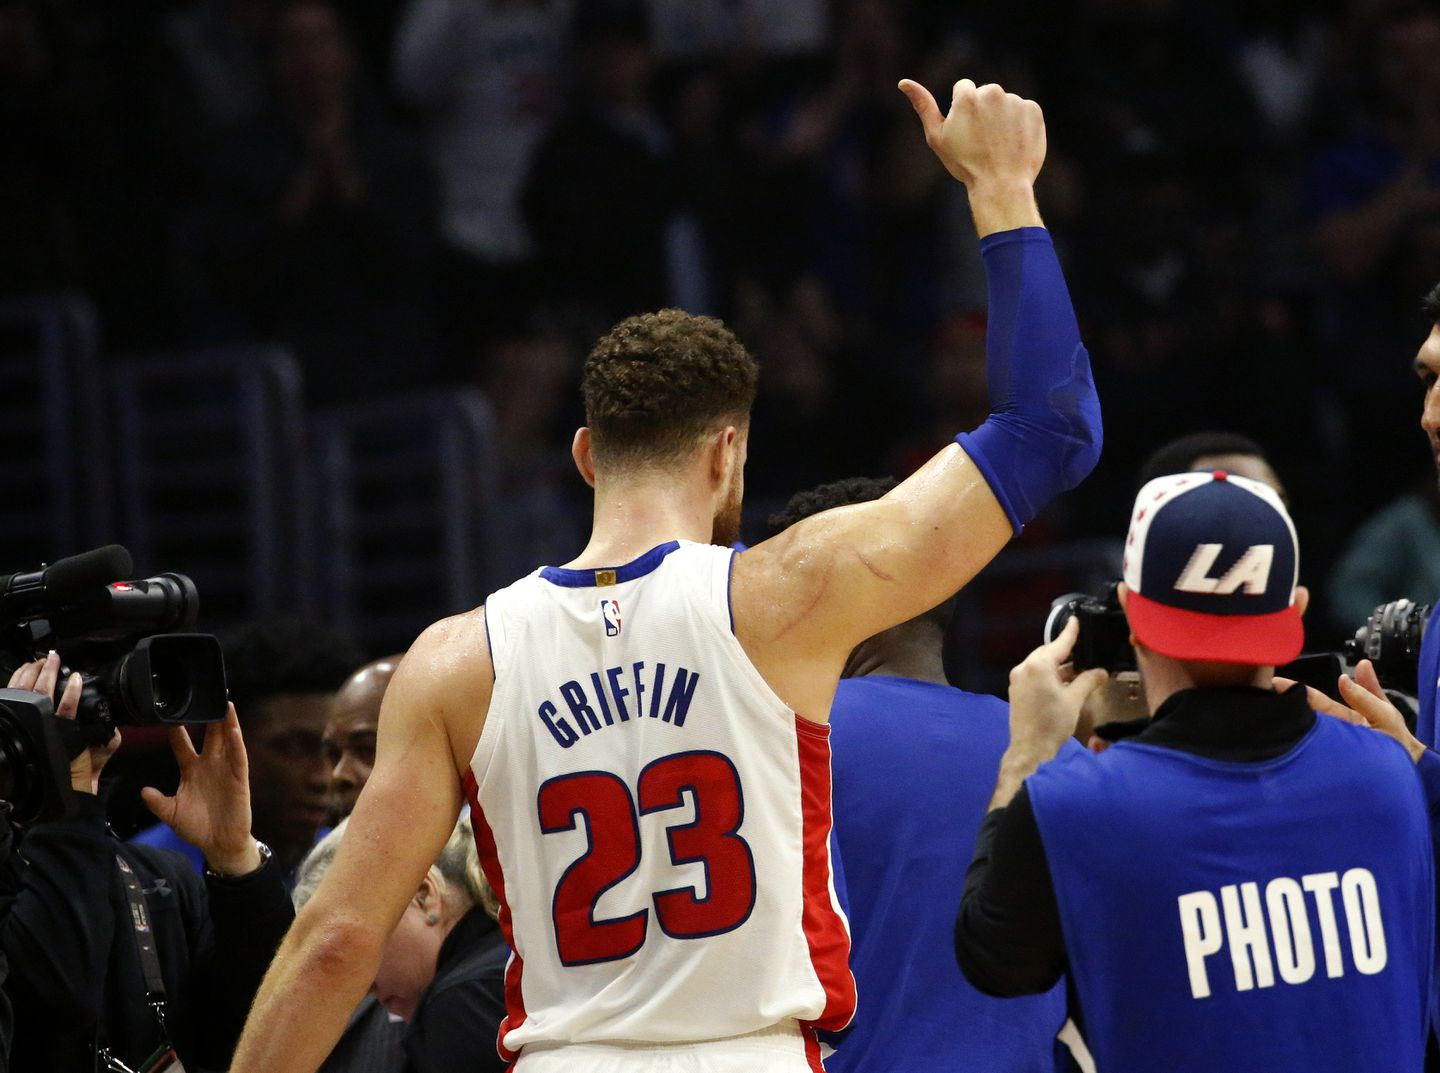 e2b1925a56d6 Blake Griffin gives the thumbs up to Los Angeles fans following his  44-point performance